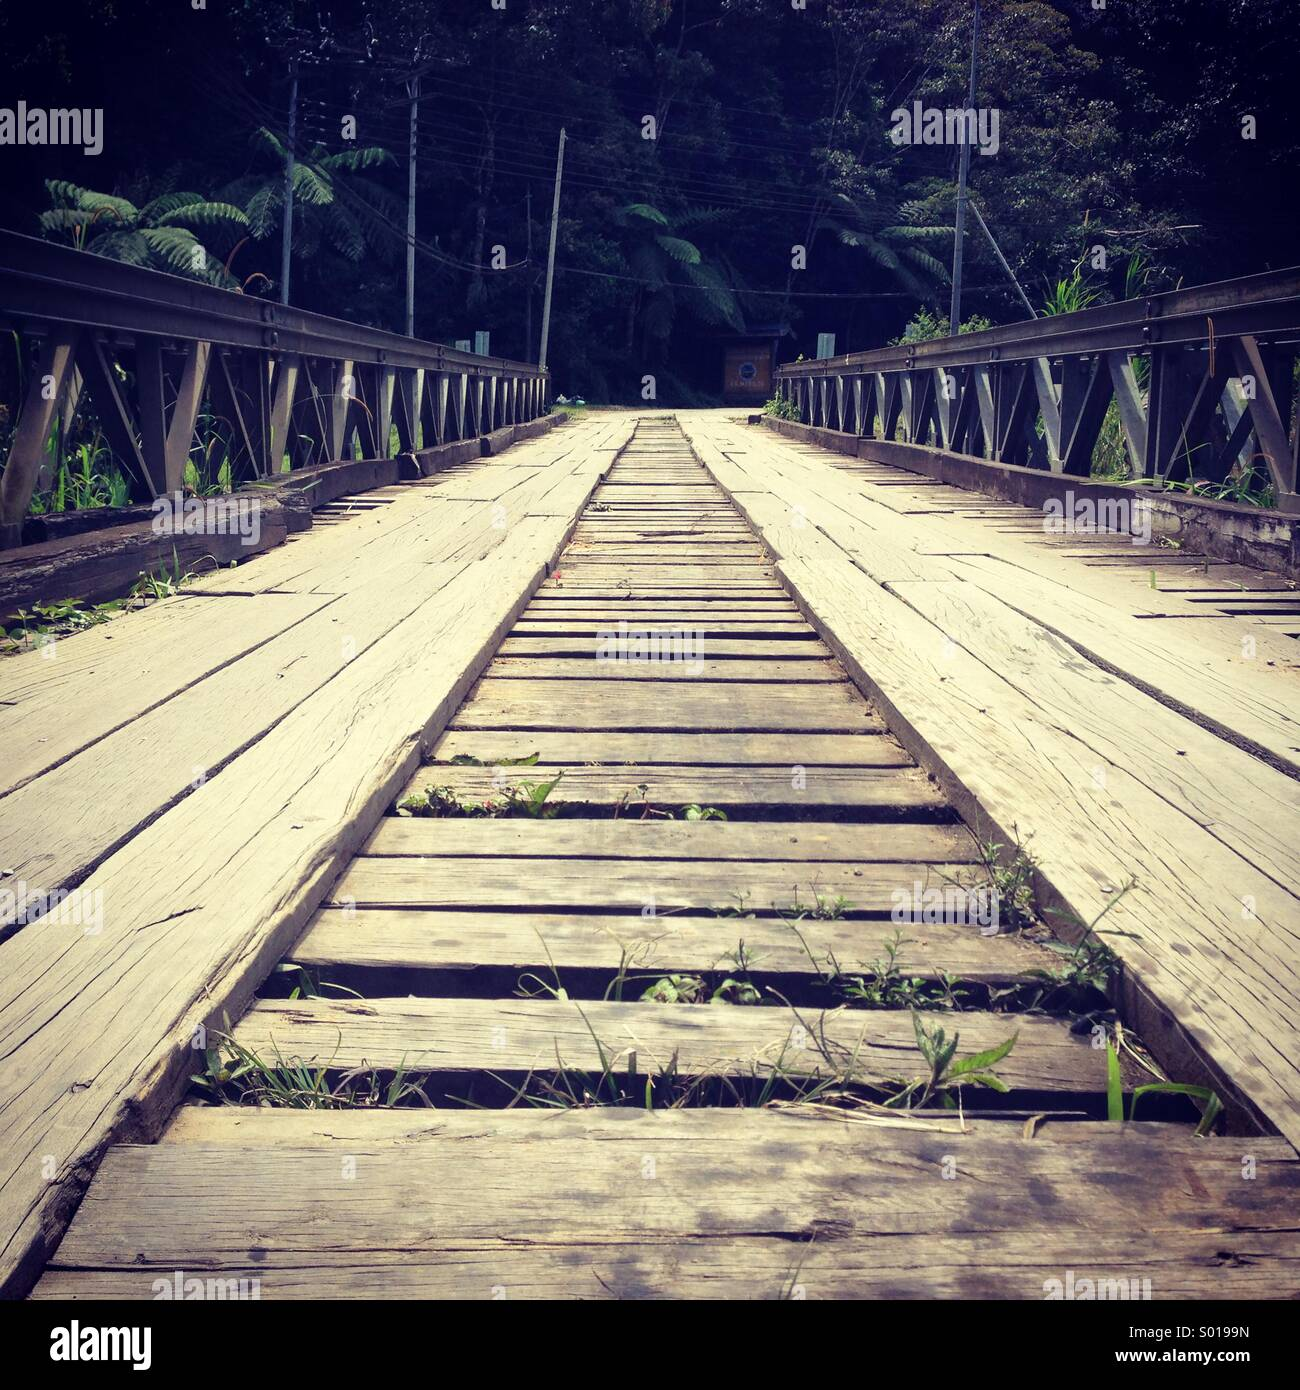 An old wooden bridge still used today for crossing a river to the otherside. - Stock Image